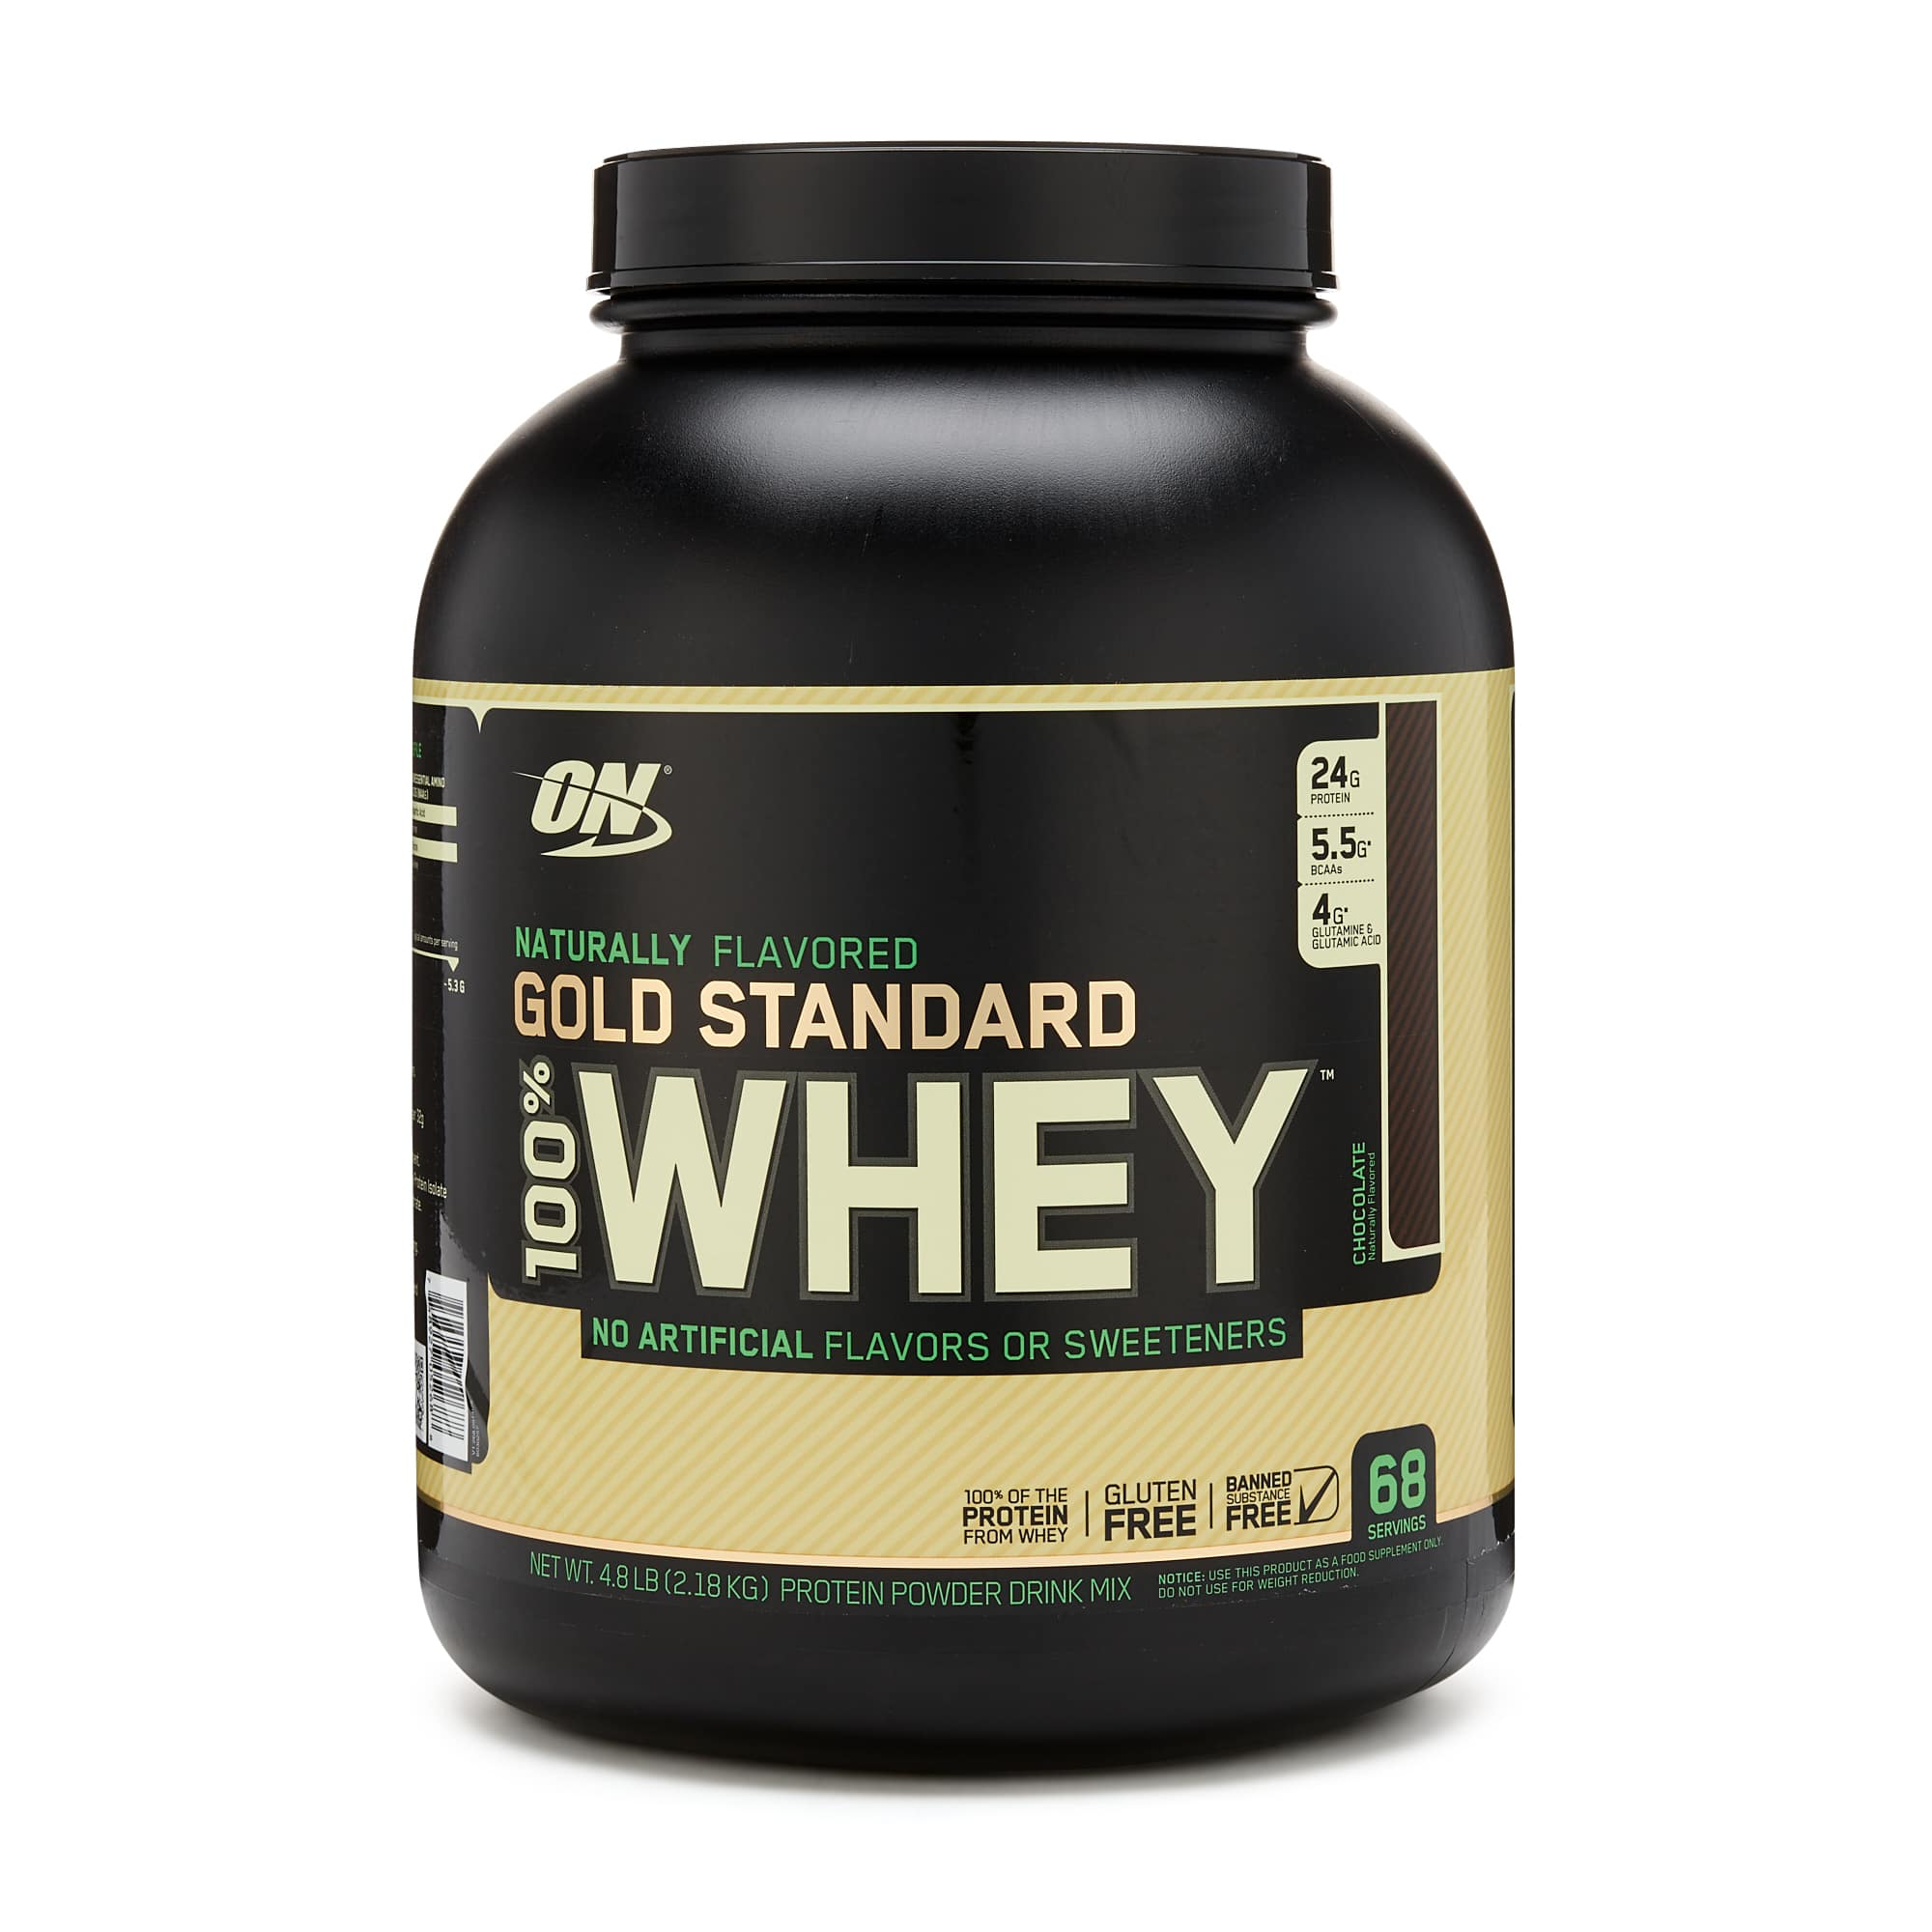 Optimum Nutrition Natural Whey Protein 4.8 lbs $42.01 with code and Amex GNC offer, free shipping